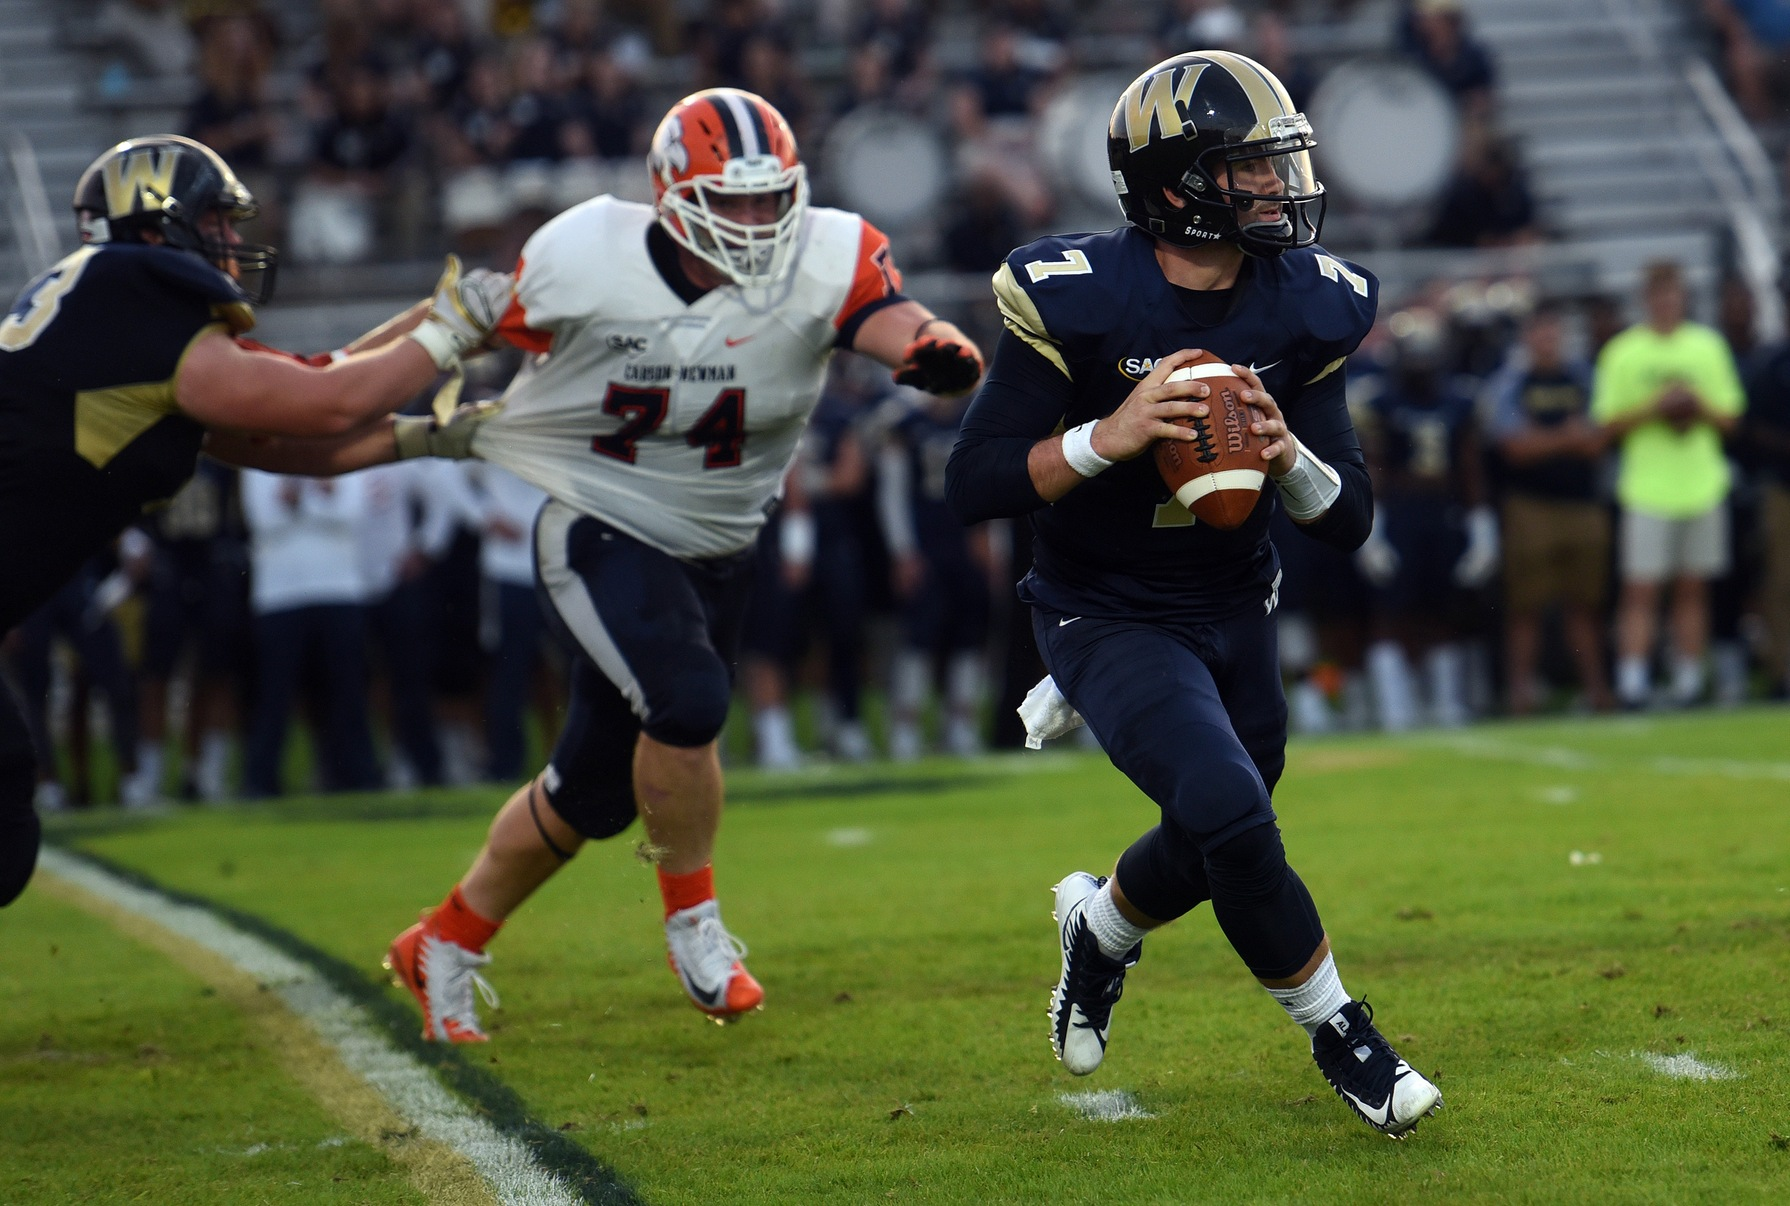 Better Know The Opponent, Week Three: Wingate